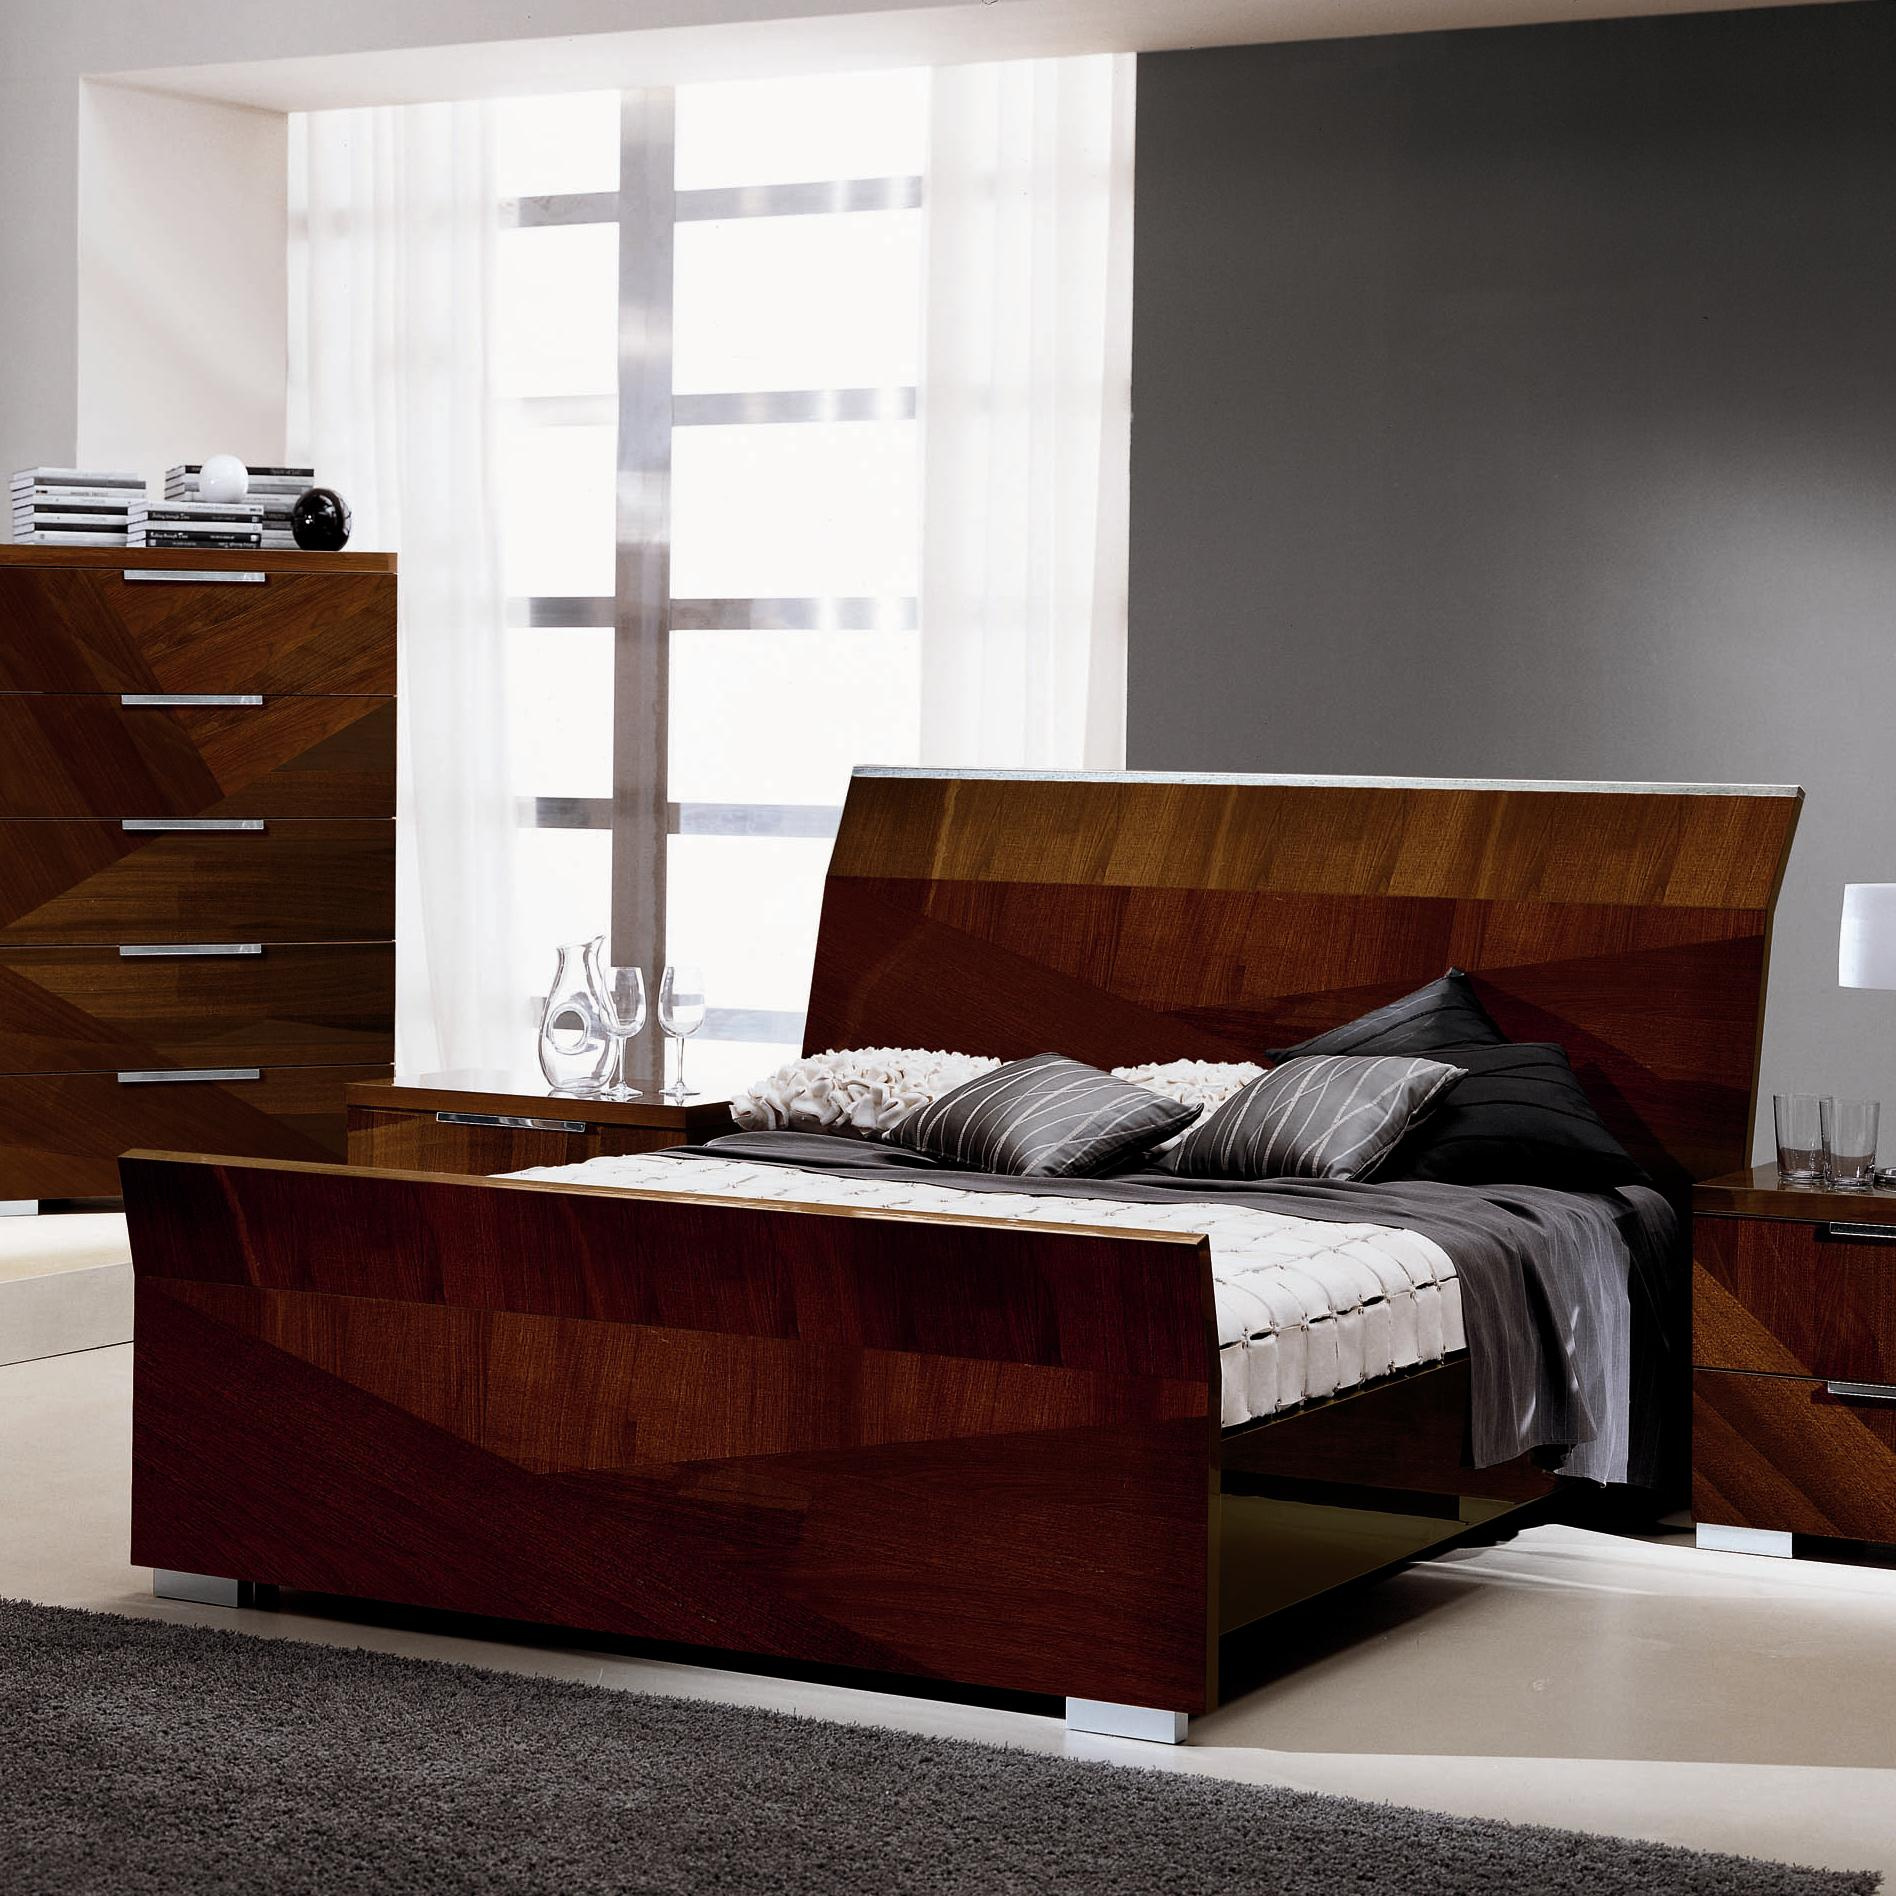 Capri King Bed by Alf Italia at Upper Room Home Furnishings